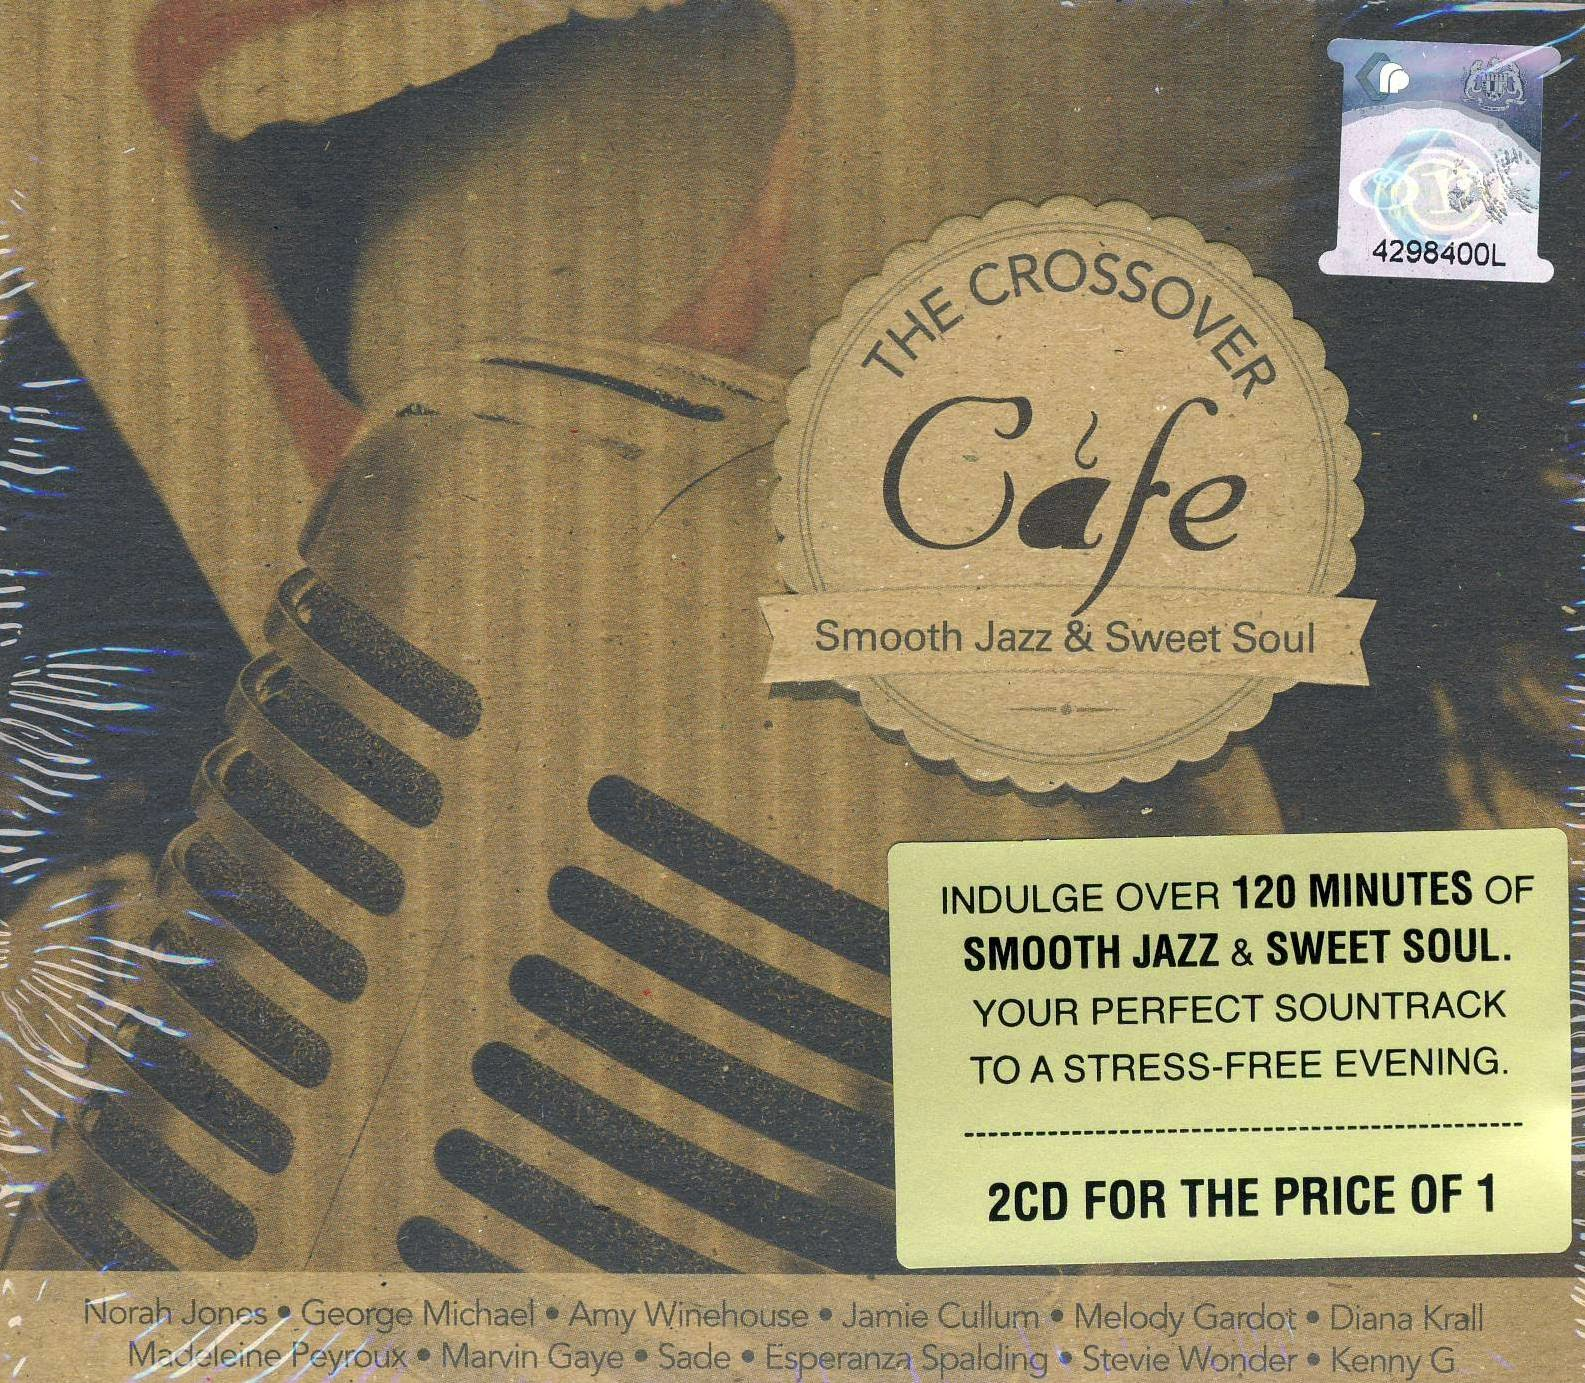 Download [M4A]-[Hit For Songs] 40 Track Smooth Jazz & Sweet Soul – The Crossover Cafe [Solidfiles] 4shared By Pleng-mun.com